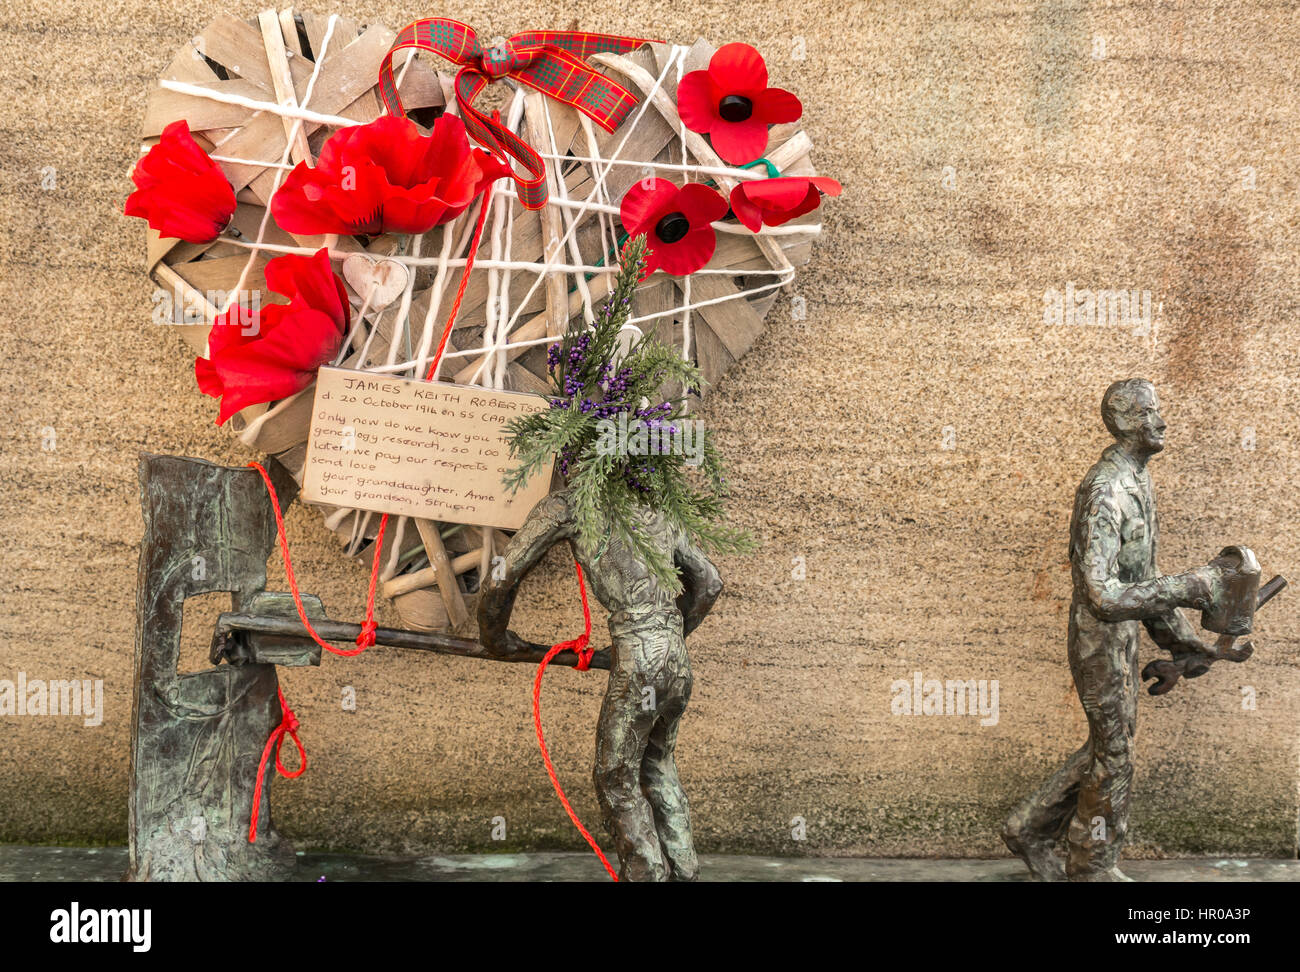 poignant-remembrance-at-scottish-merchan